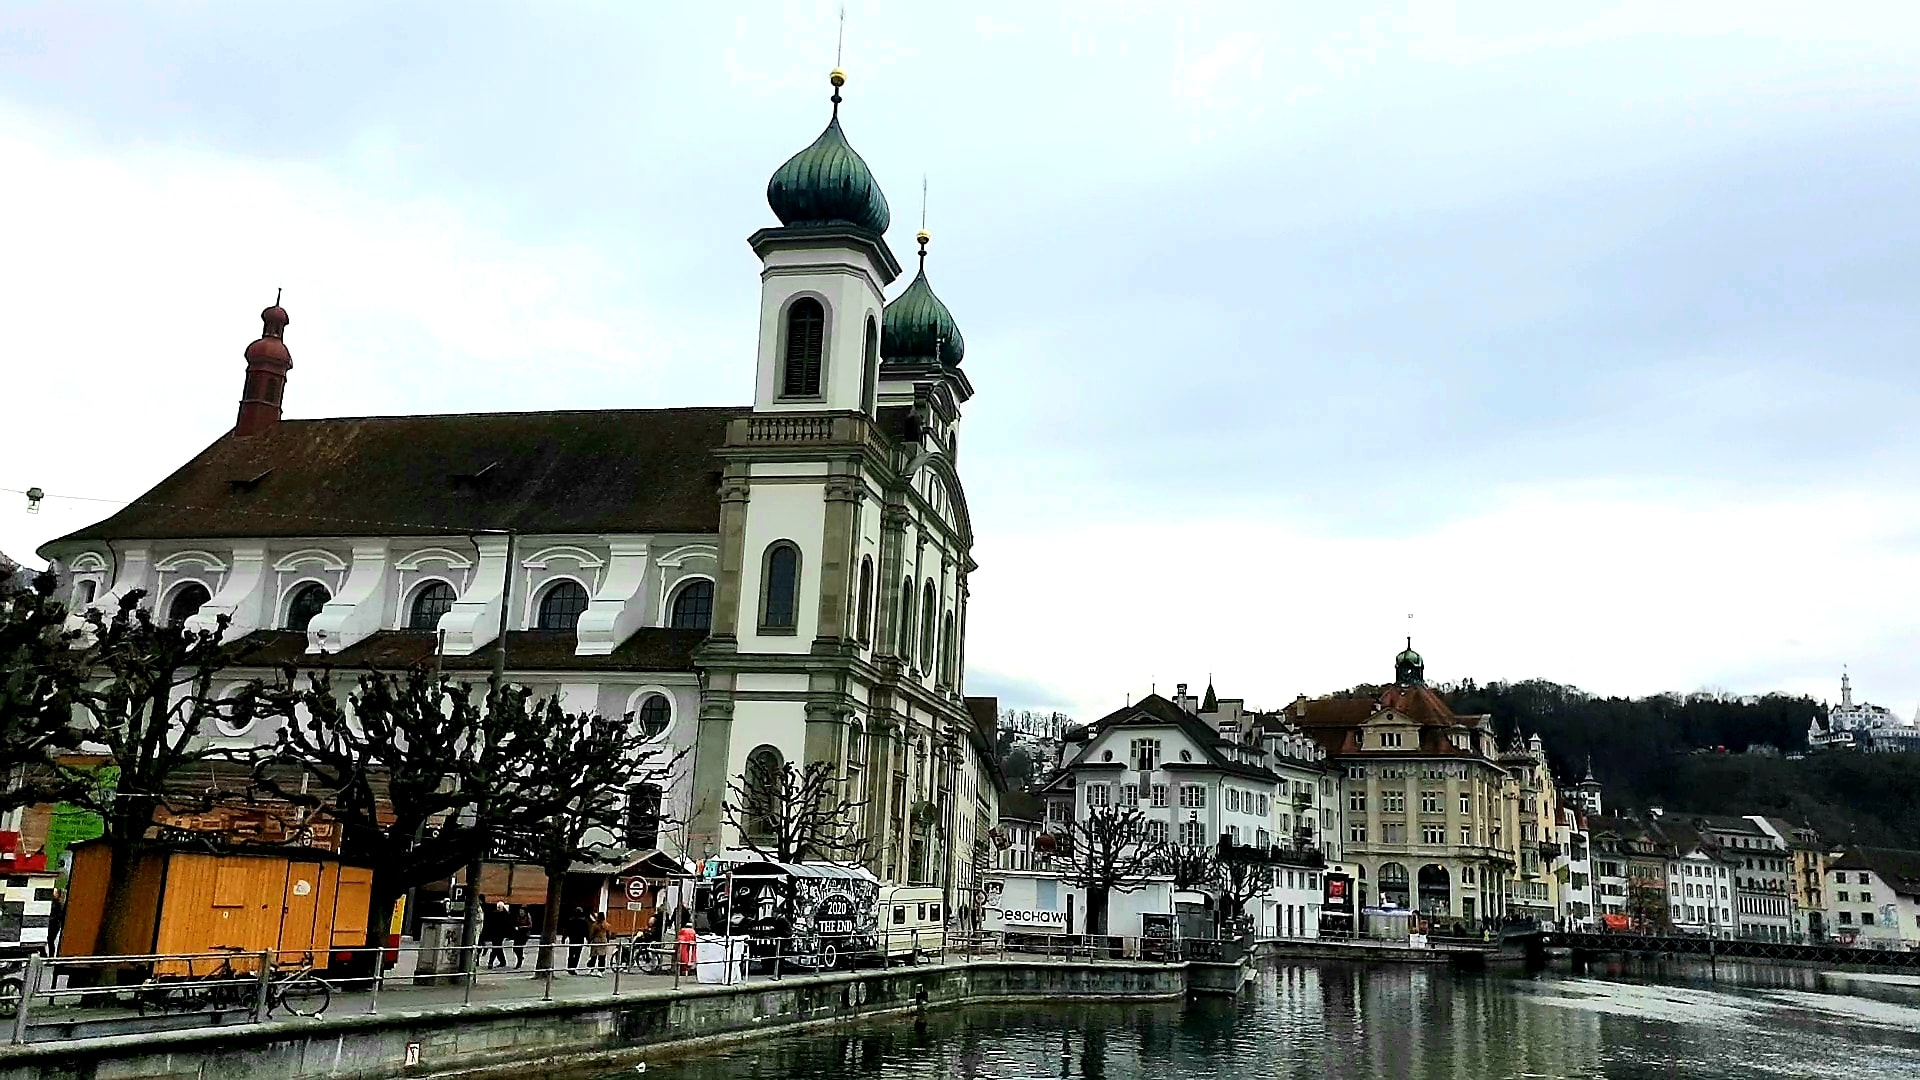 Somewhere in Lucerne